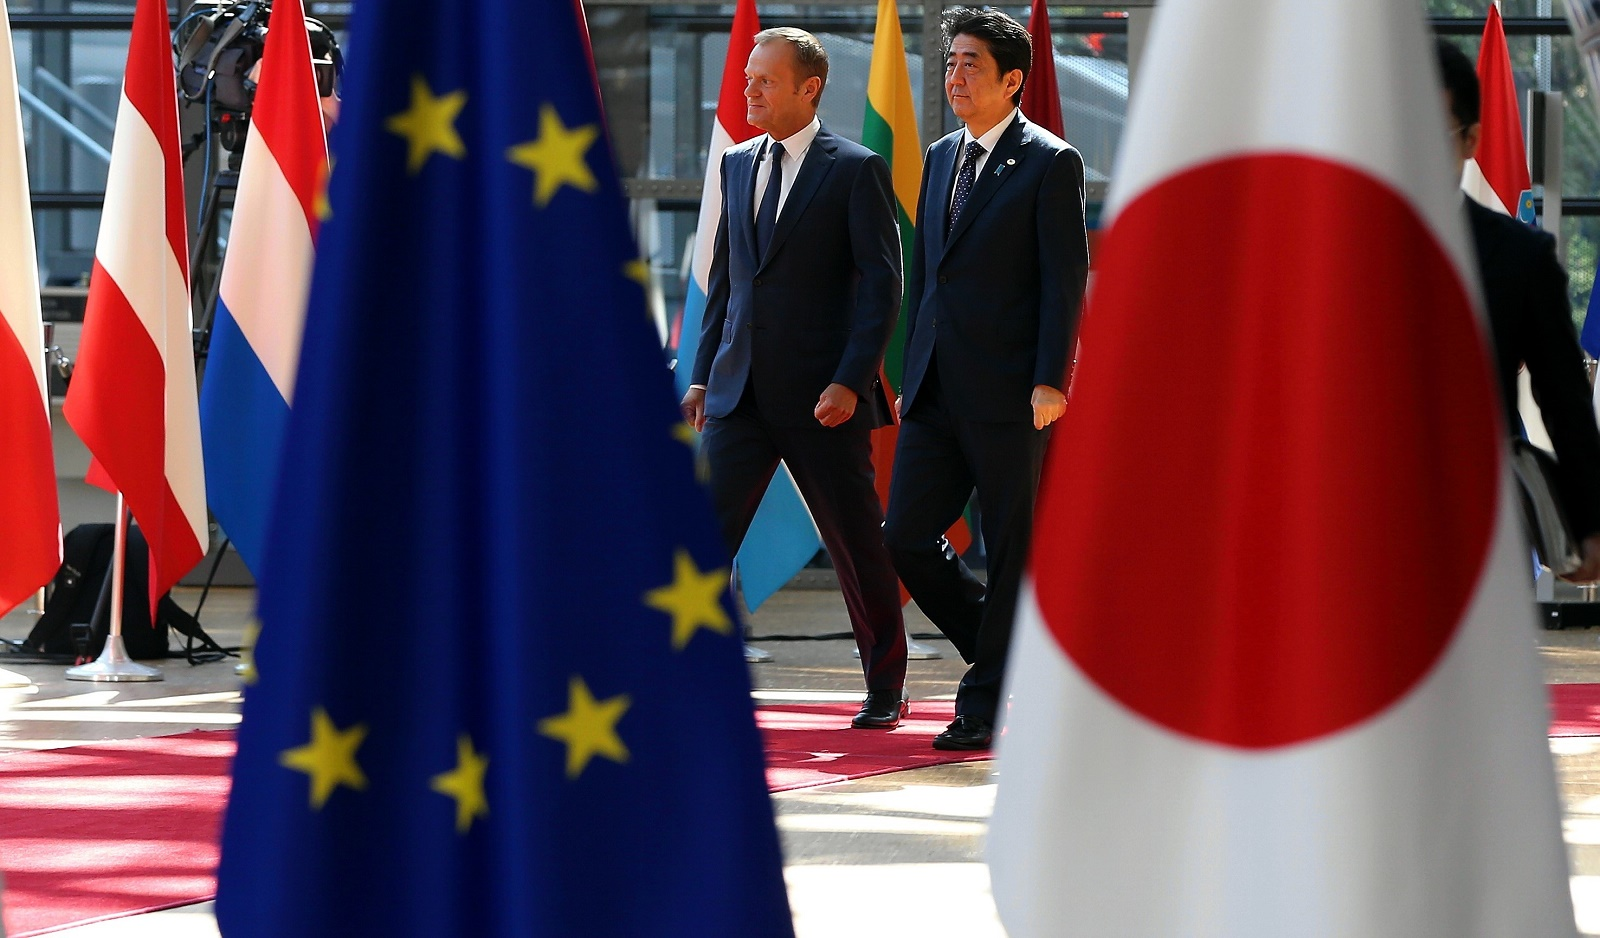 European Council President Donald Tusk and Japanese Prime Minister Shinzo Abe at the EU-Japan Summit in Brussels on 6 July (Photo: Dursun Aydemir/Getty Images)